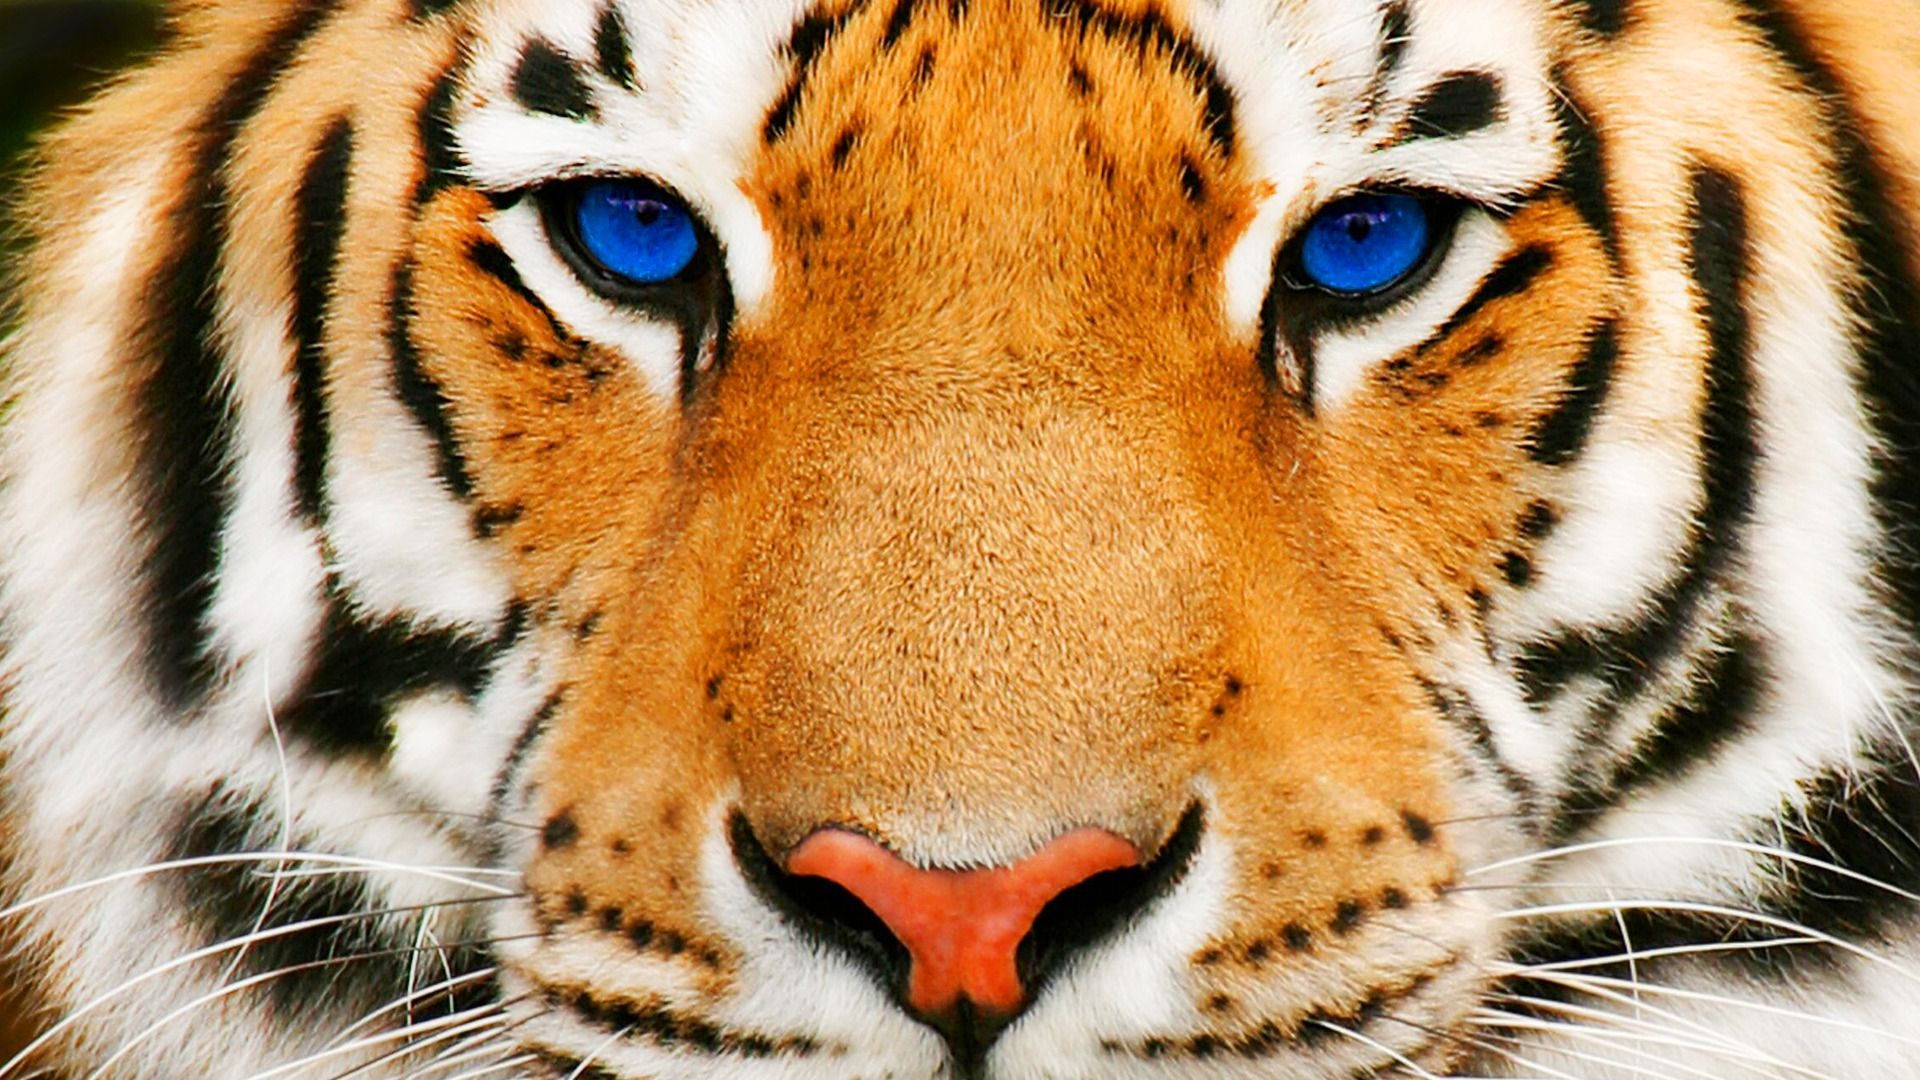 Hd Blue Eyed Tiger Wallpaper Download Free 114366 Wild Life